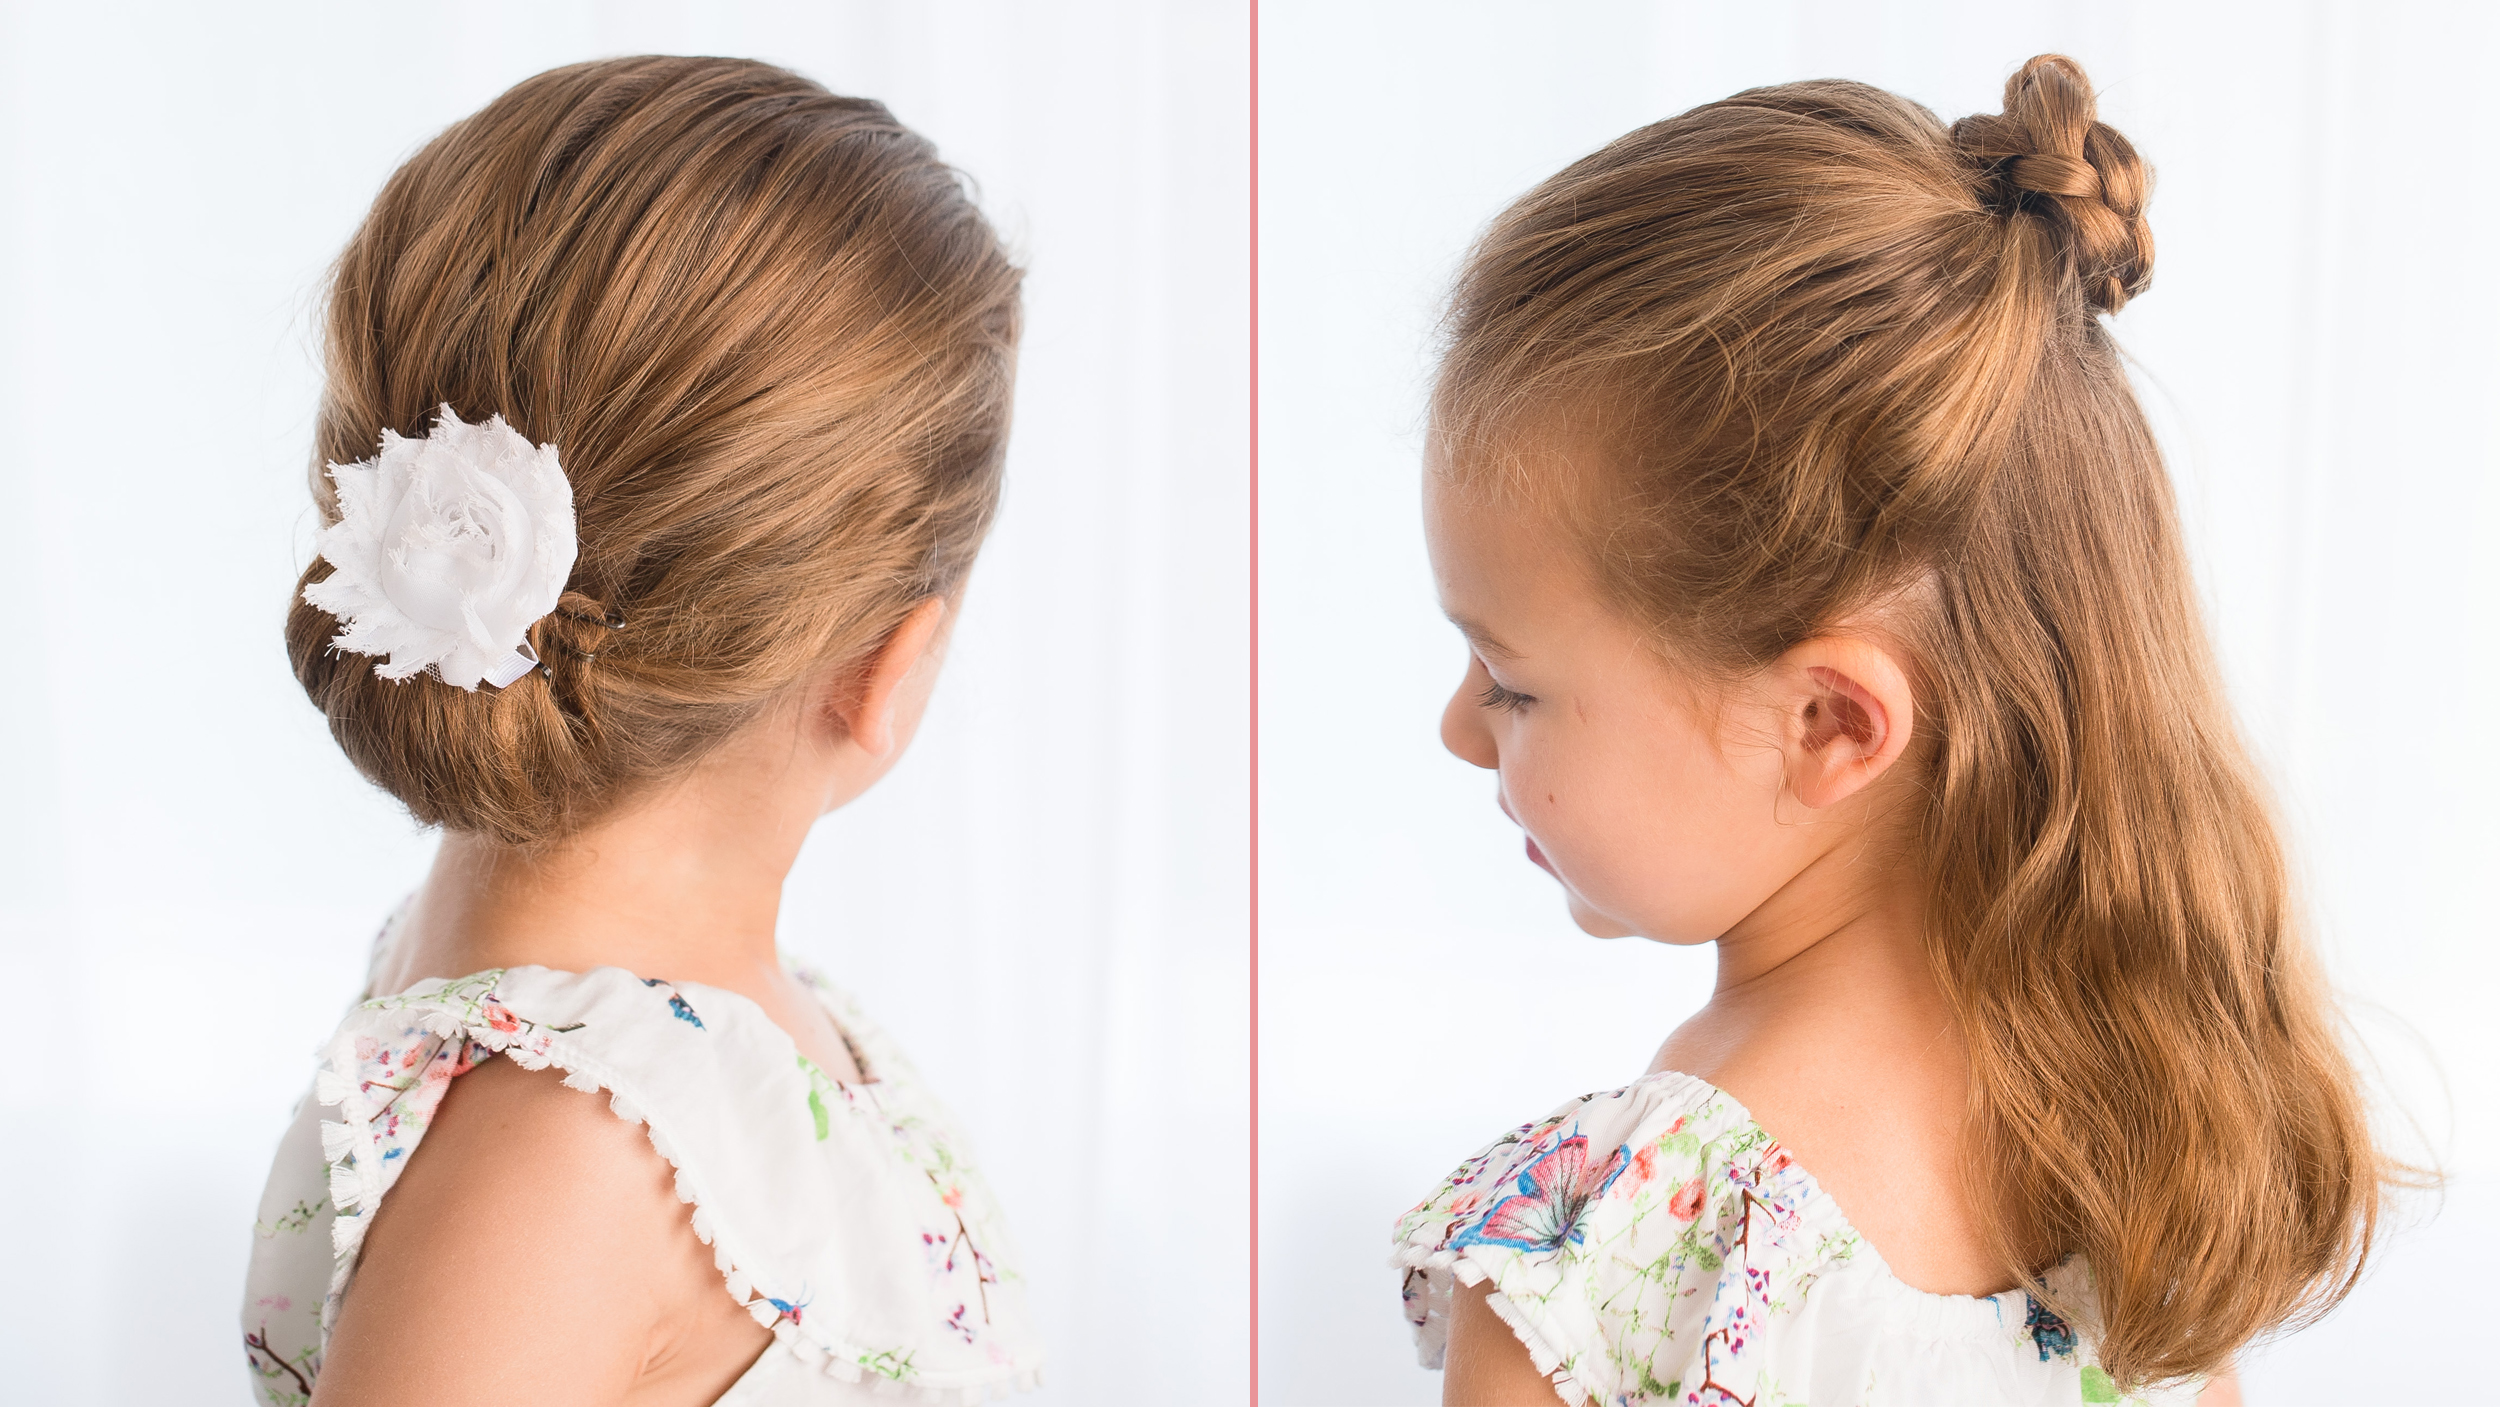 3 Easy Back to School Hairstyles for brief hair